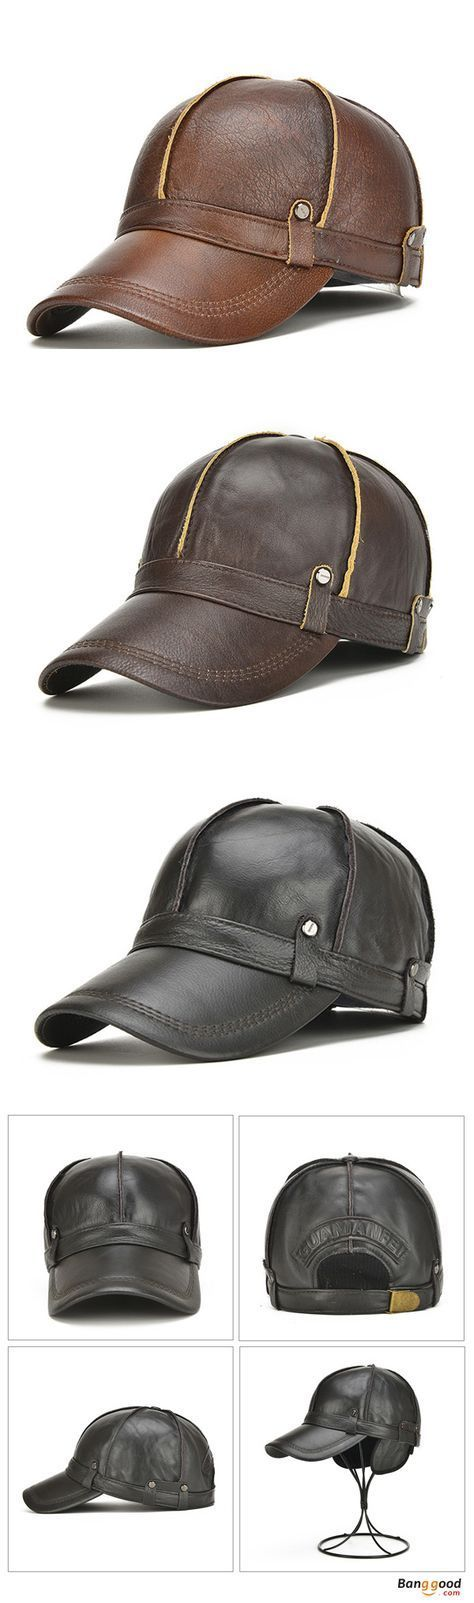 US$28.69+Free shipping. 60% OFF! Warm Baseball Cap, Trucker Hat, Genuine Leather, With Ears Flaps, Adjustable, Color: Black, Brown, Yellow Brown. Shop now~